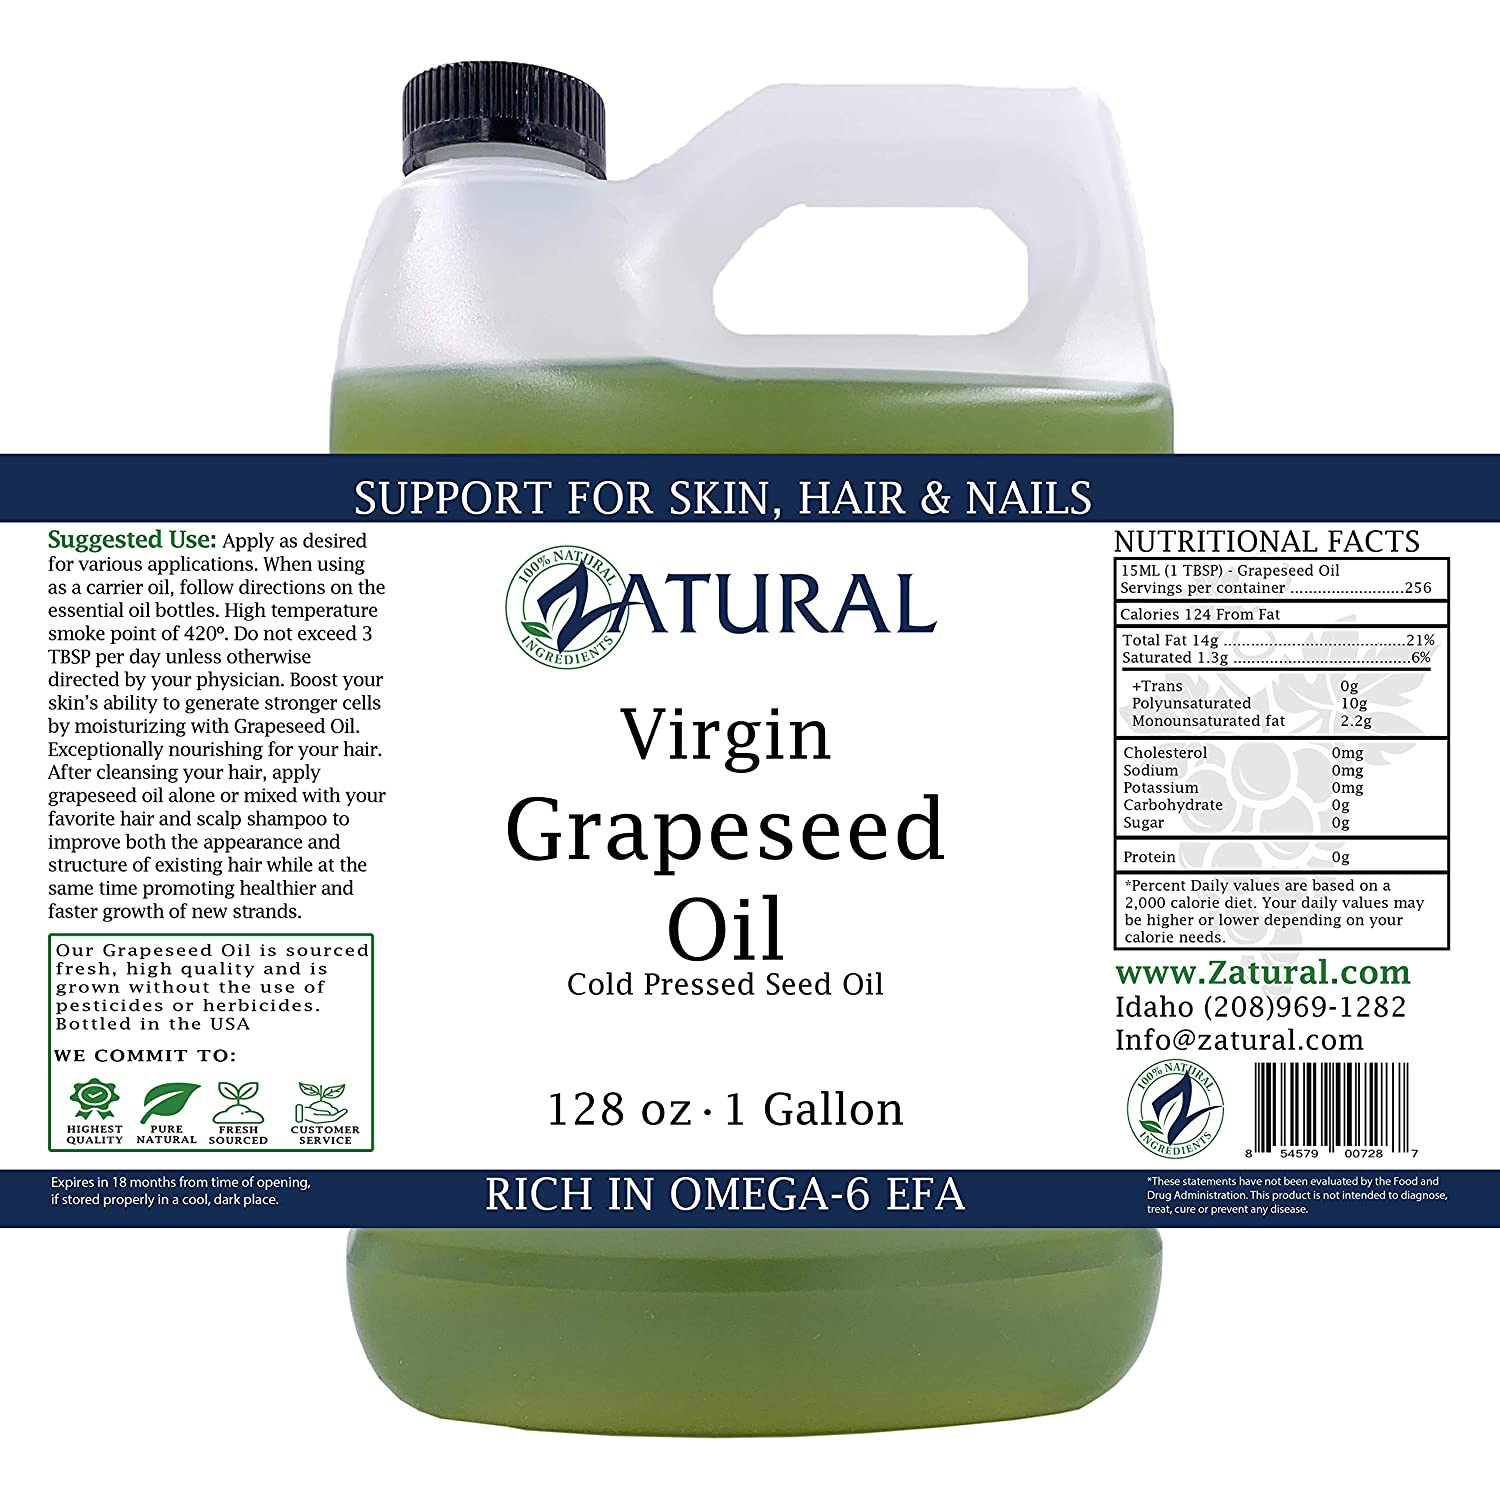 GrapeSeed Oil-Cold Pressed, Virgin, Undiluted, 100 Pure Grape Seed Oil 128 Ounce 1 Gallon